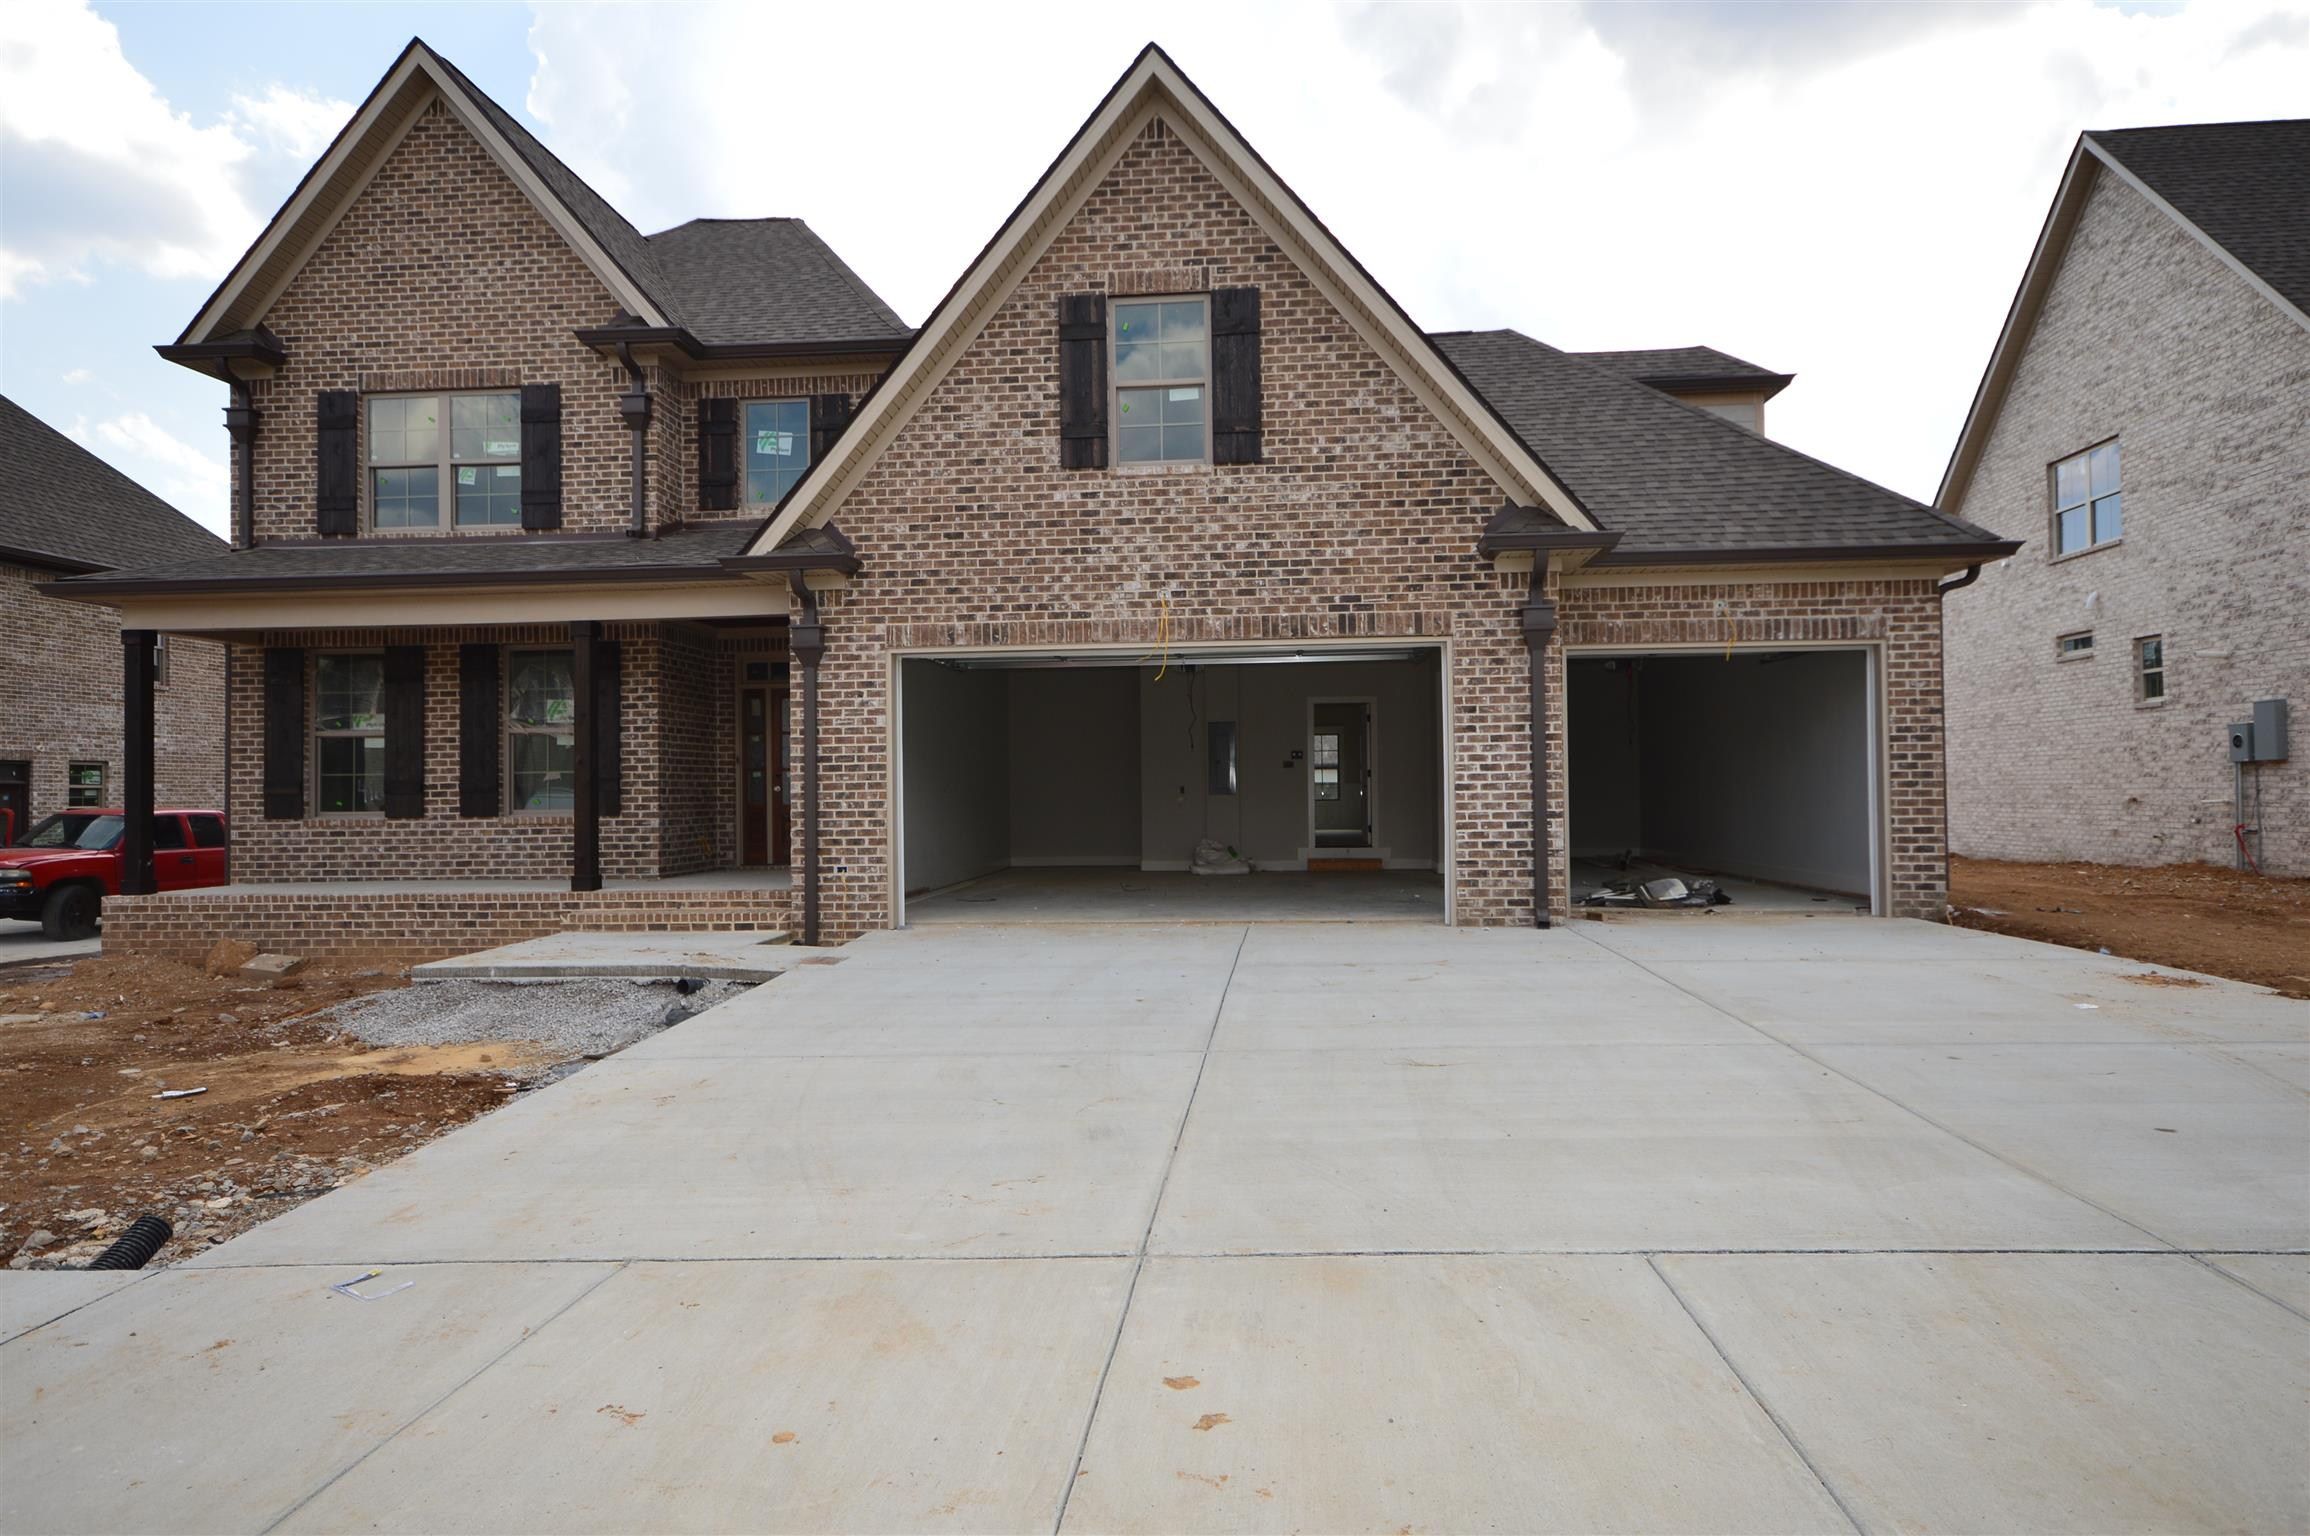 1020 Alpaca Dr. (416) 37174 - One of Spring Hill Homes for Sale